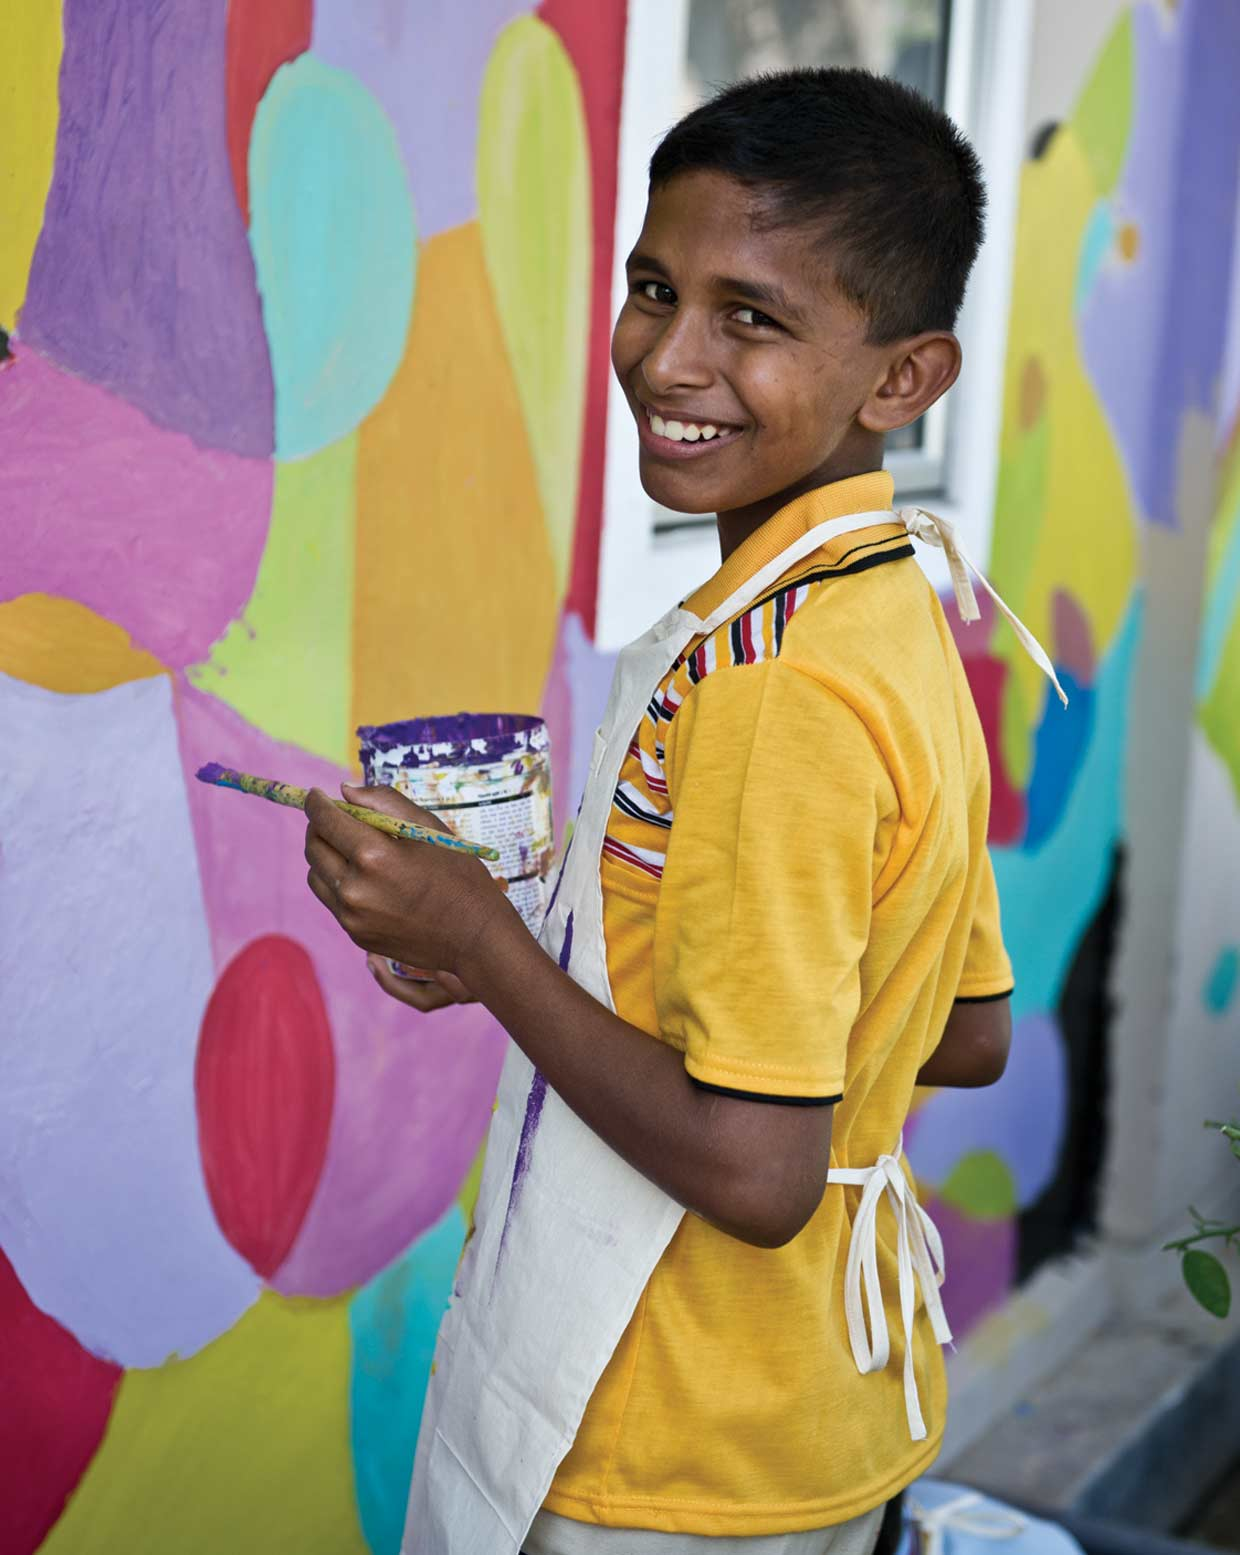 All smiles! An MJF Kid taking part in a wall painting exercise at the MJF Foundation Centre in Moratuwa. Over 750 children receive the opportunity for betterment through the efforts of the MJF Kids Programme established in 2006.